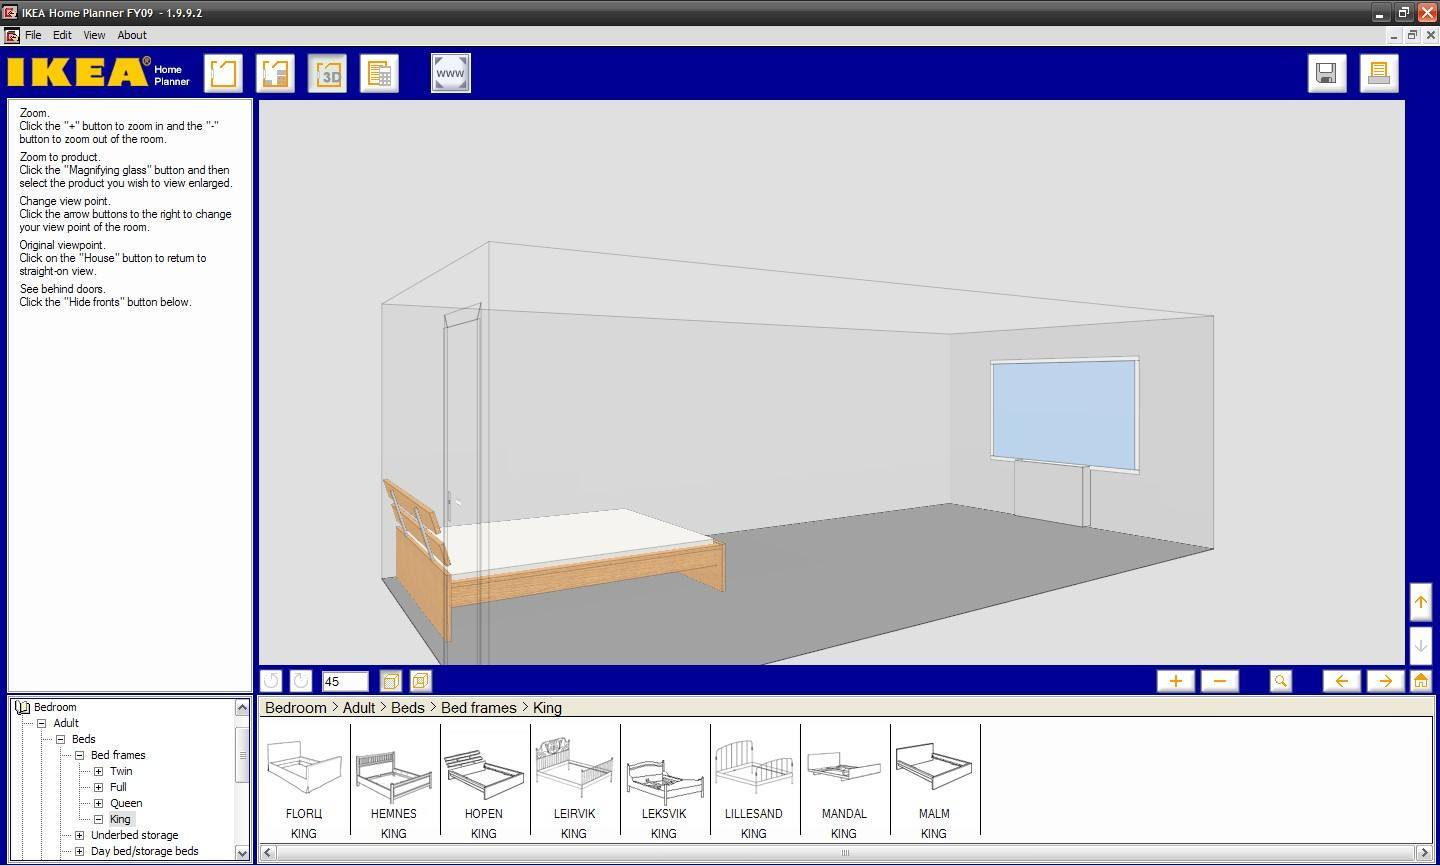 Home Planner For Ikea Full Version Ikea Home Planner Software Informer Screenshots